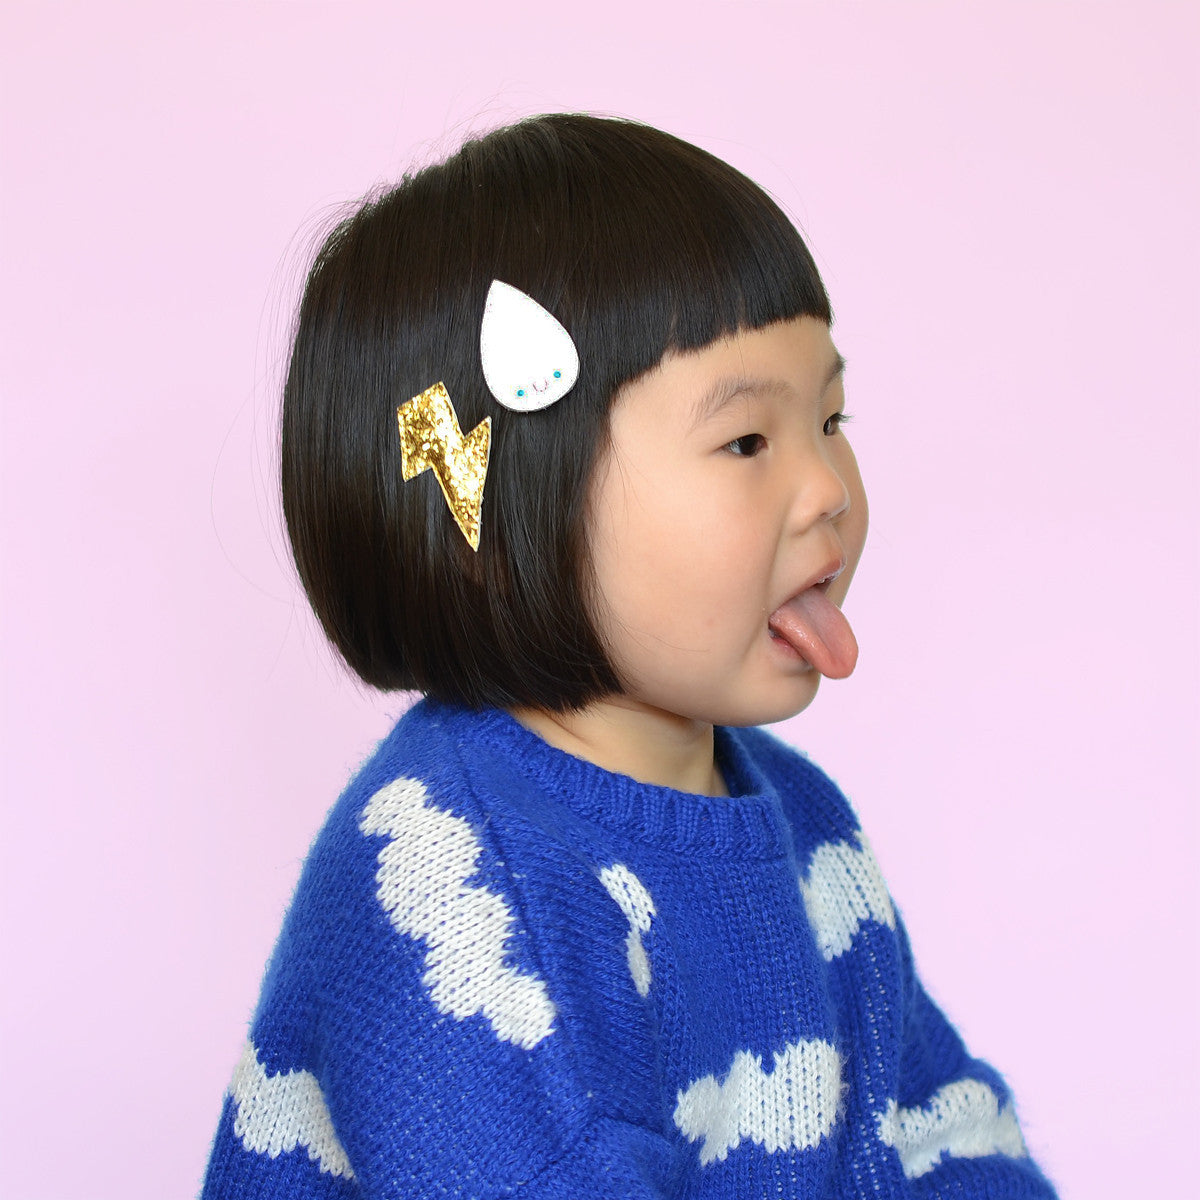 Stormy Weather Rain Drop Hair Clips by Hello Shiso - Little Citizens Boutique  - 1